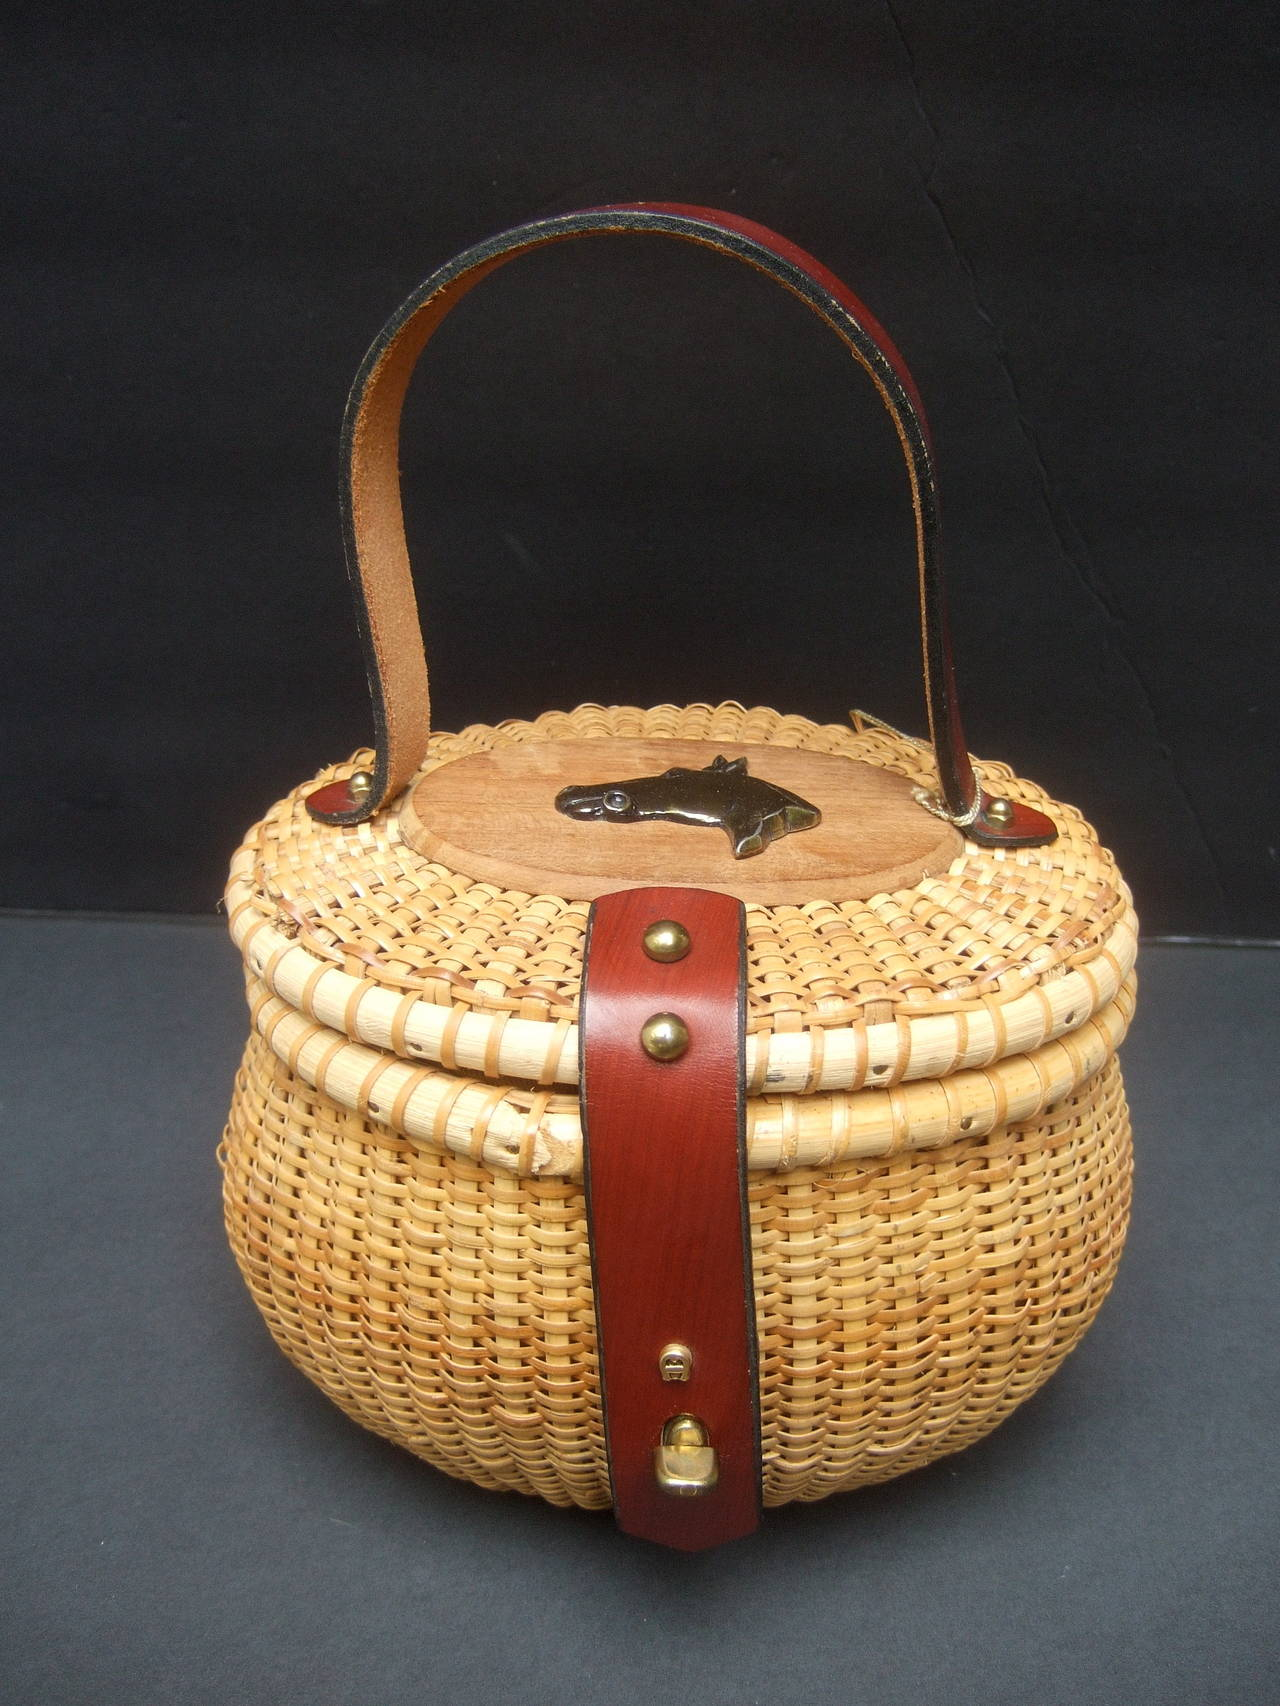 Oval wicker basket equestrian theme handbag c 1970s